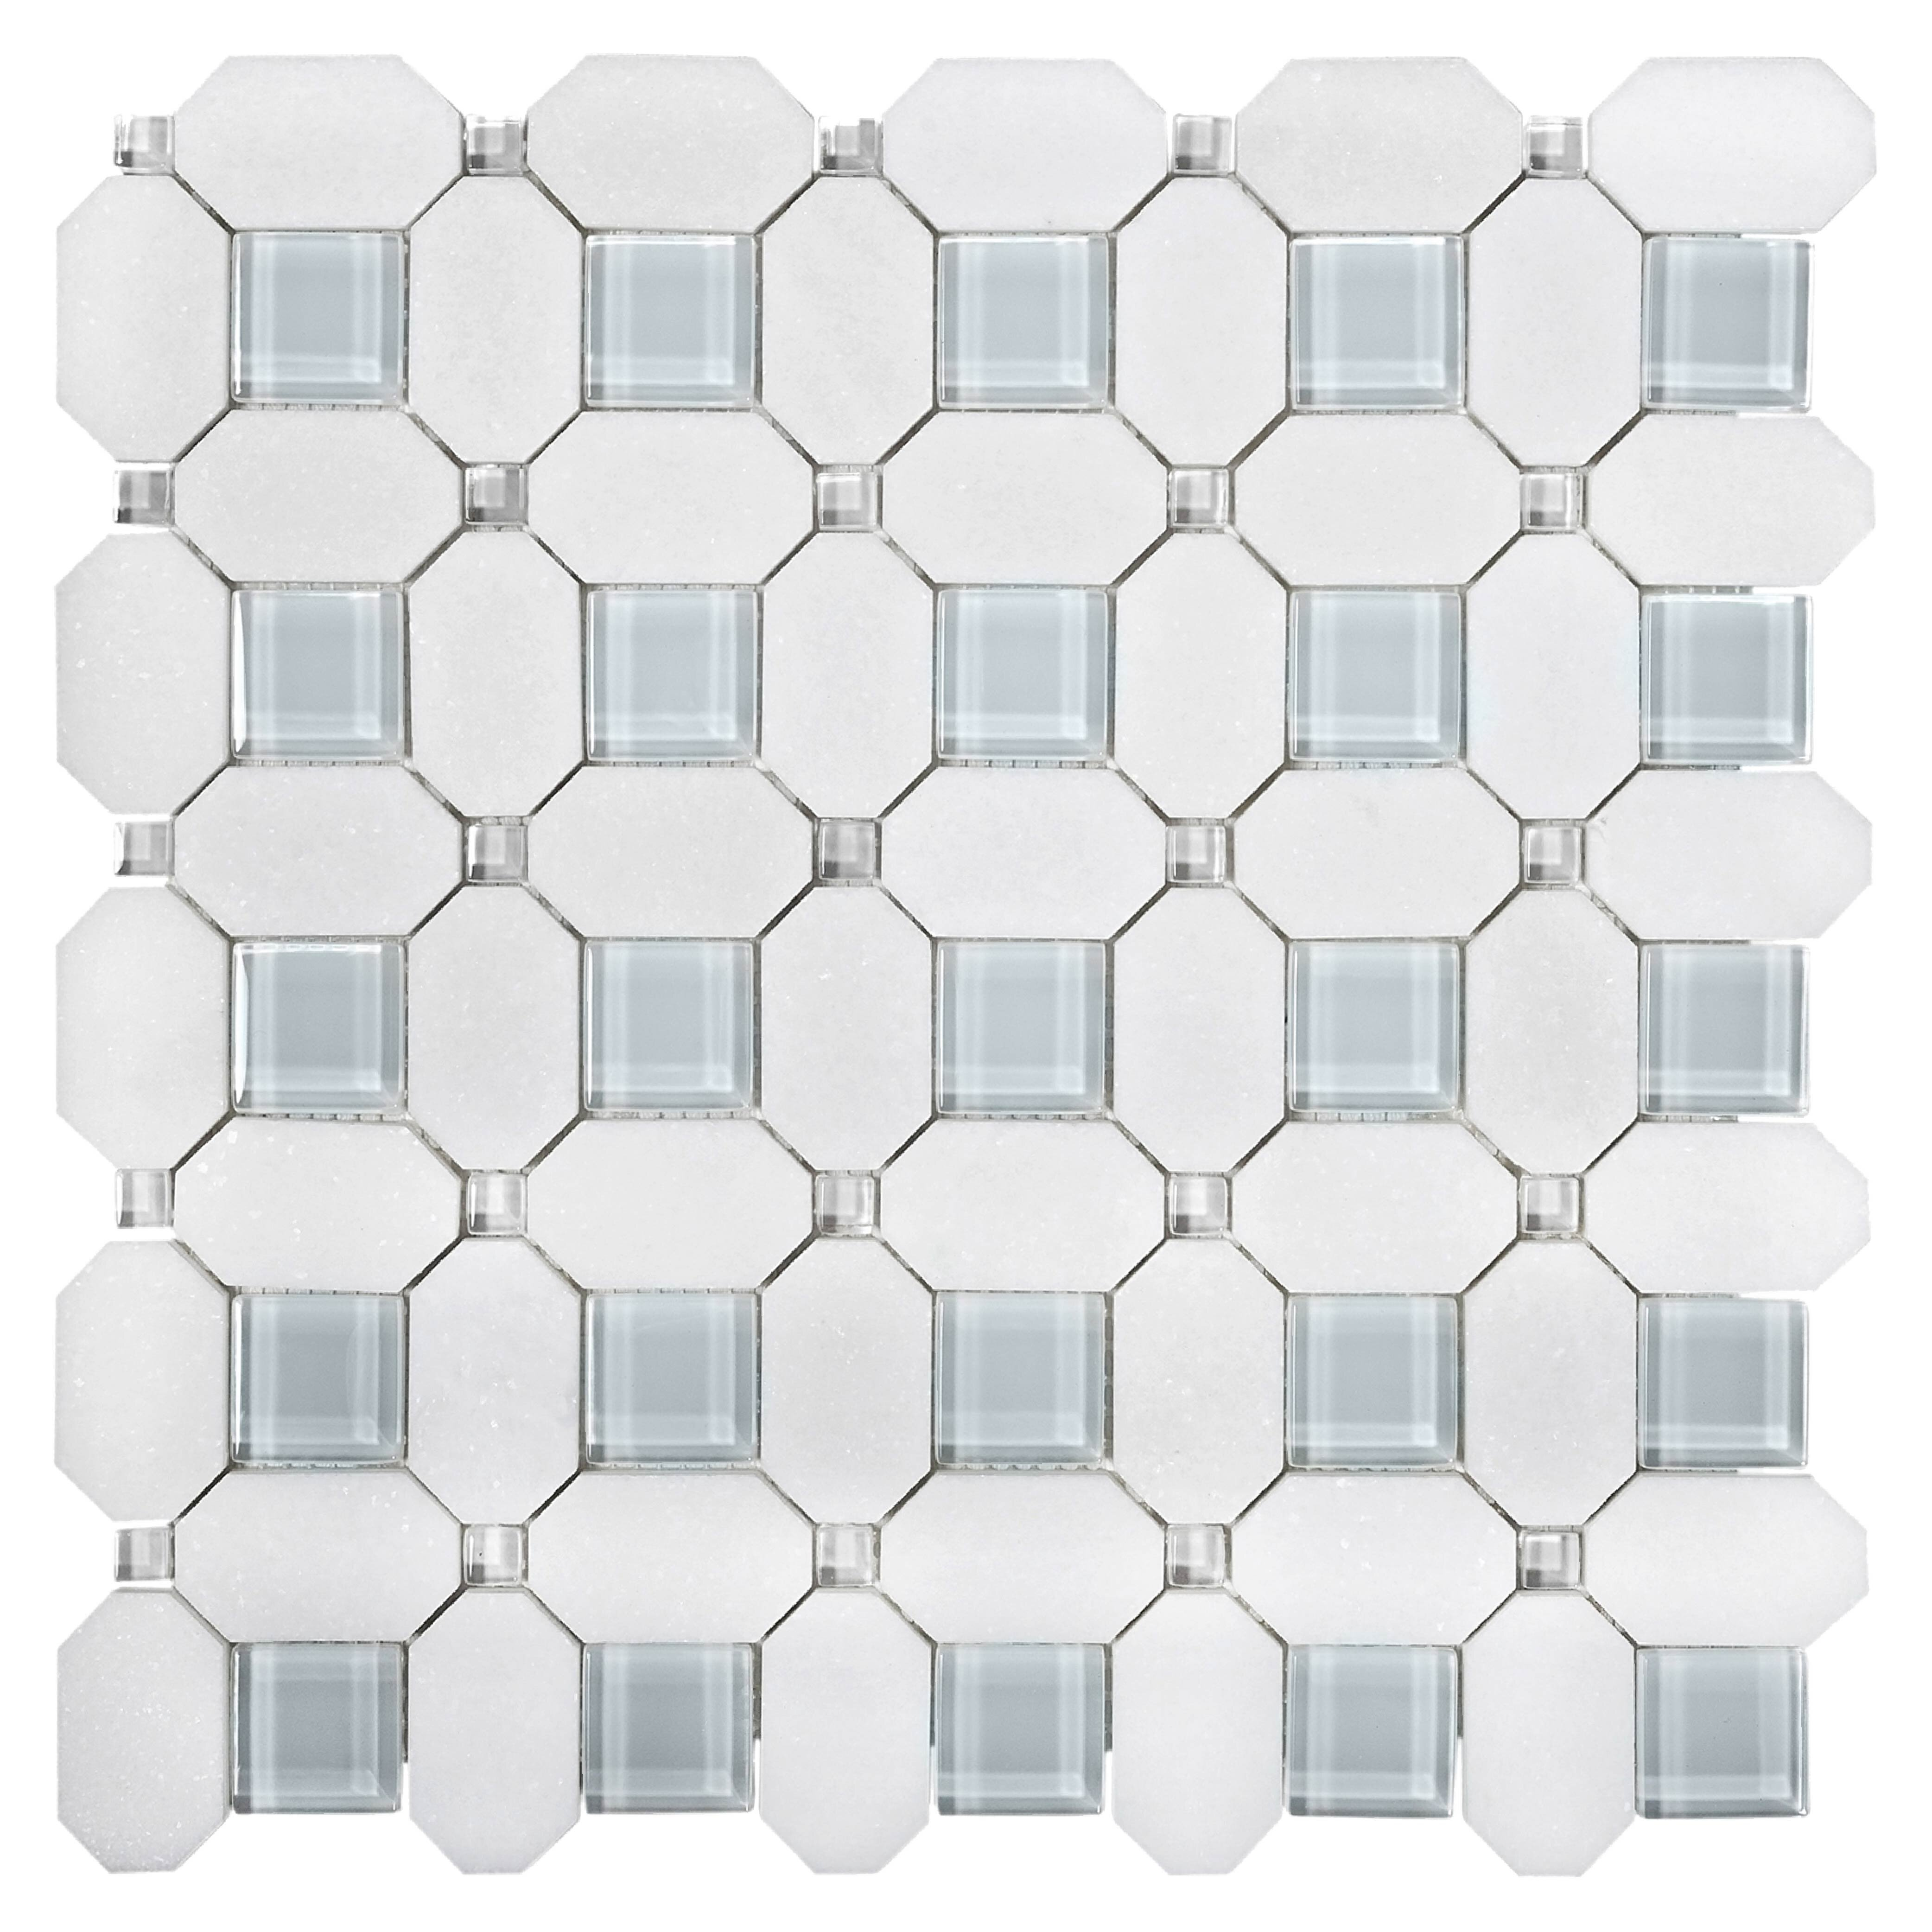 Apollo Tile White And Blue Marble Mosaic Tile 12 2 X 12 2 Sheet For Kitchen Bathroom Wall Panel Or Flooring 5 Pack Wayfair